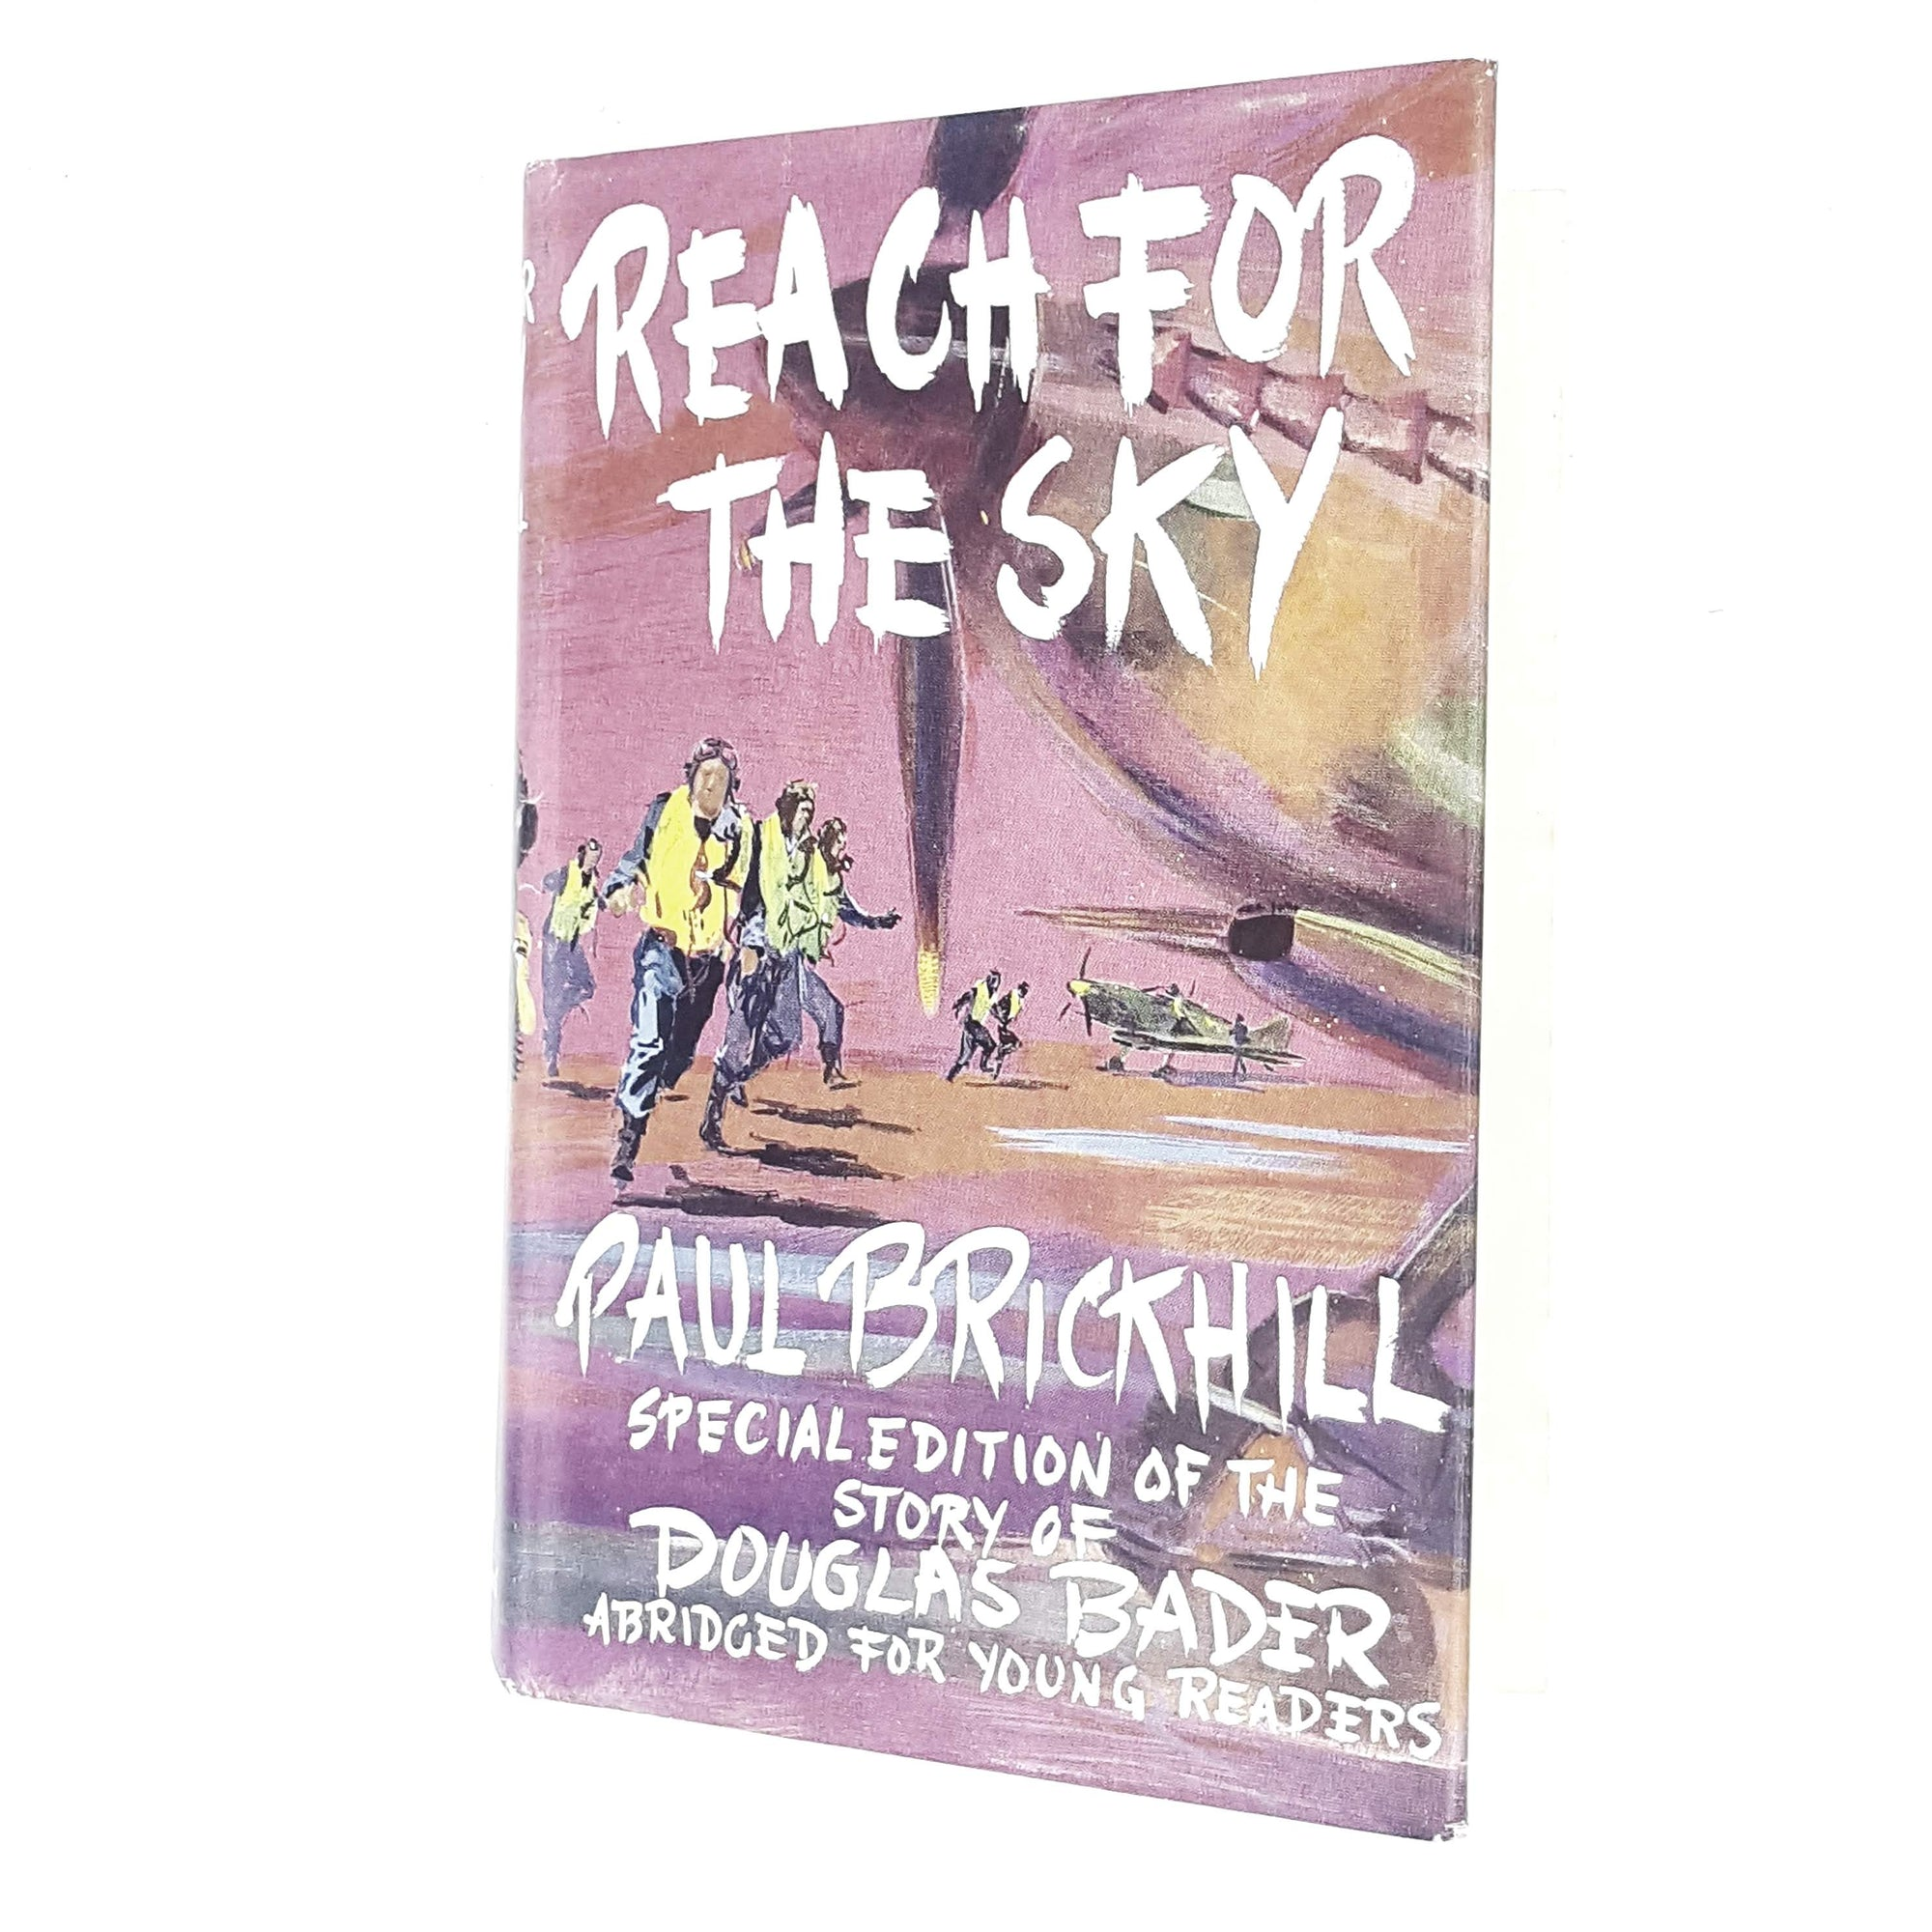 Vintage Aviation: Reach for the Sky by Paul Brickhill Special Edition 1966